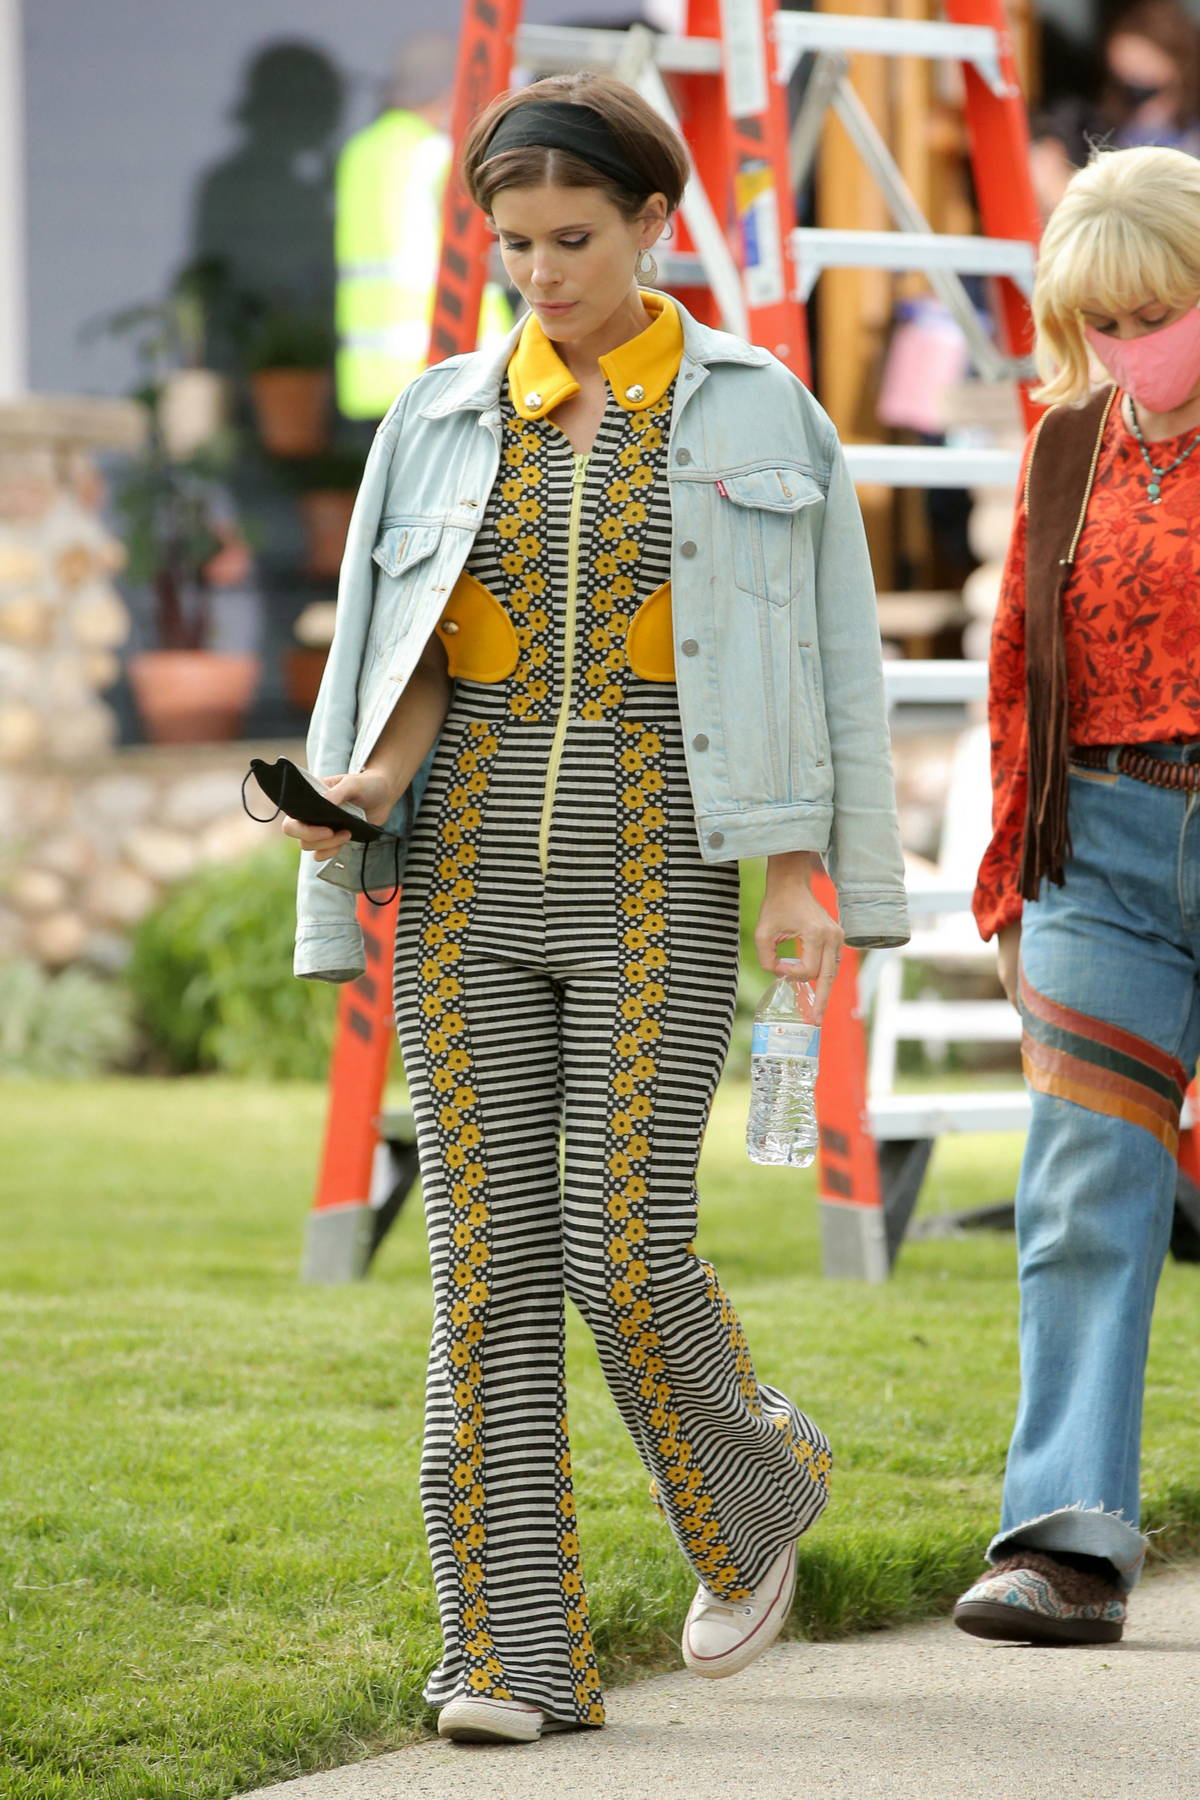 Kate Mara seen wearing a retro-style jumpsuit with platform high heels on the set of 'Call Jane' in Hartford, Connecticut